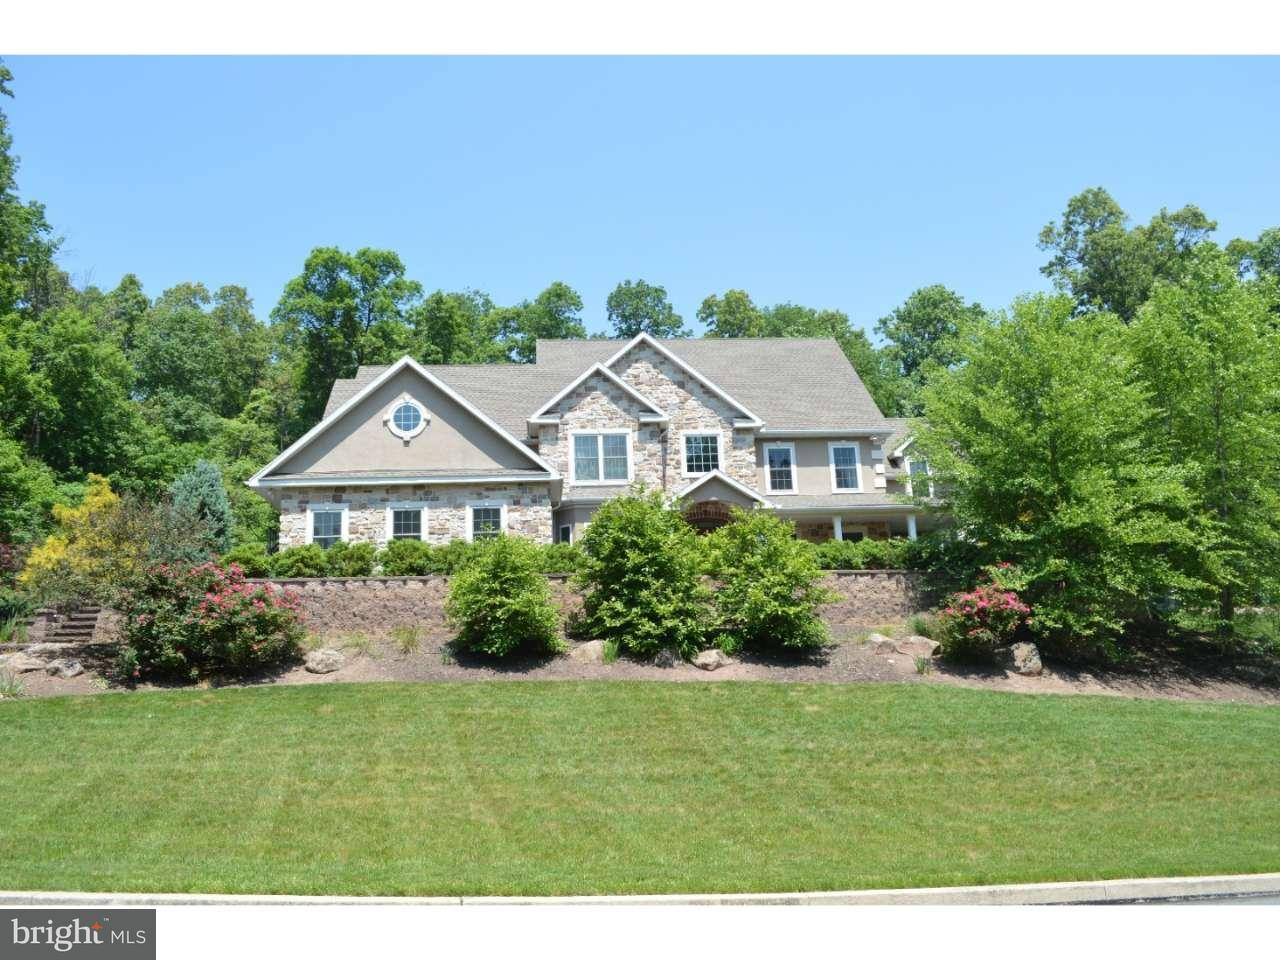 Single Family Home for Sale at 2 BURGANDY Drive Mohnton, Pennsylvania 19540 United States